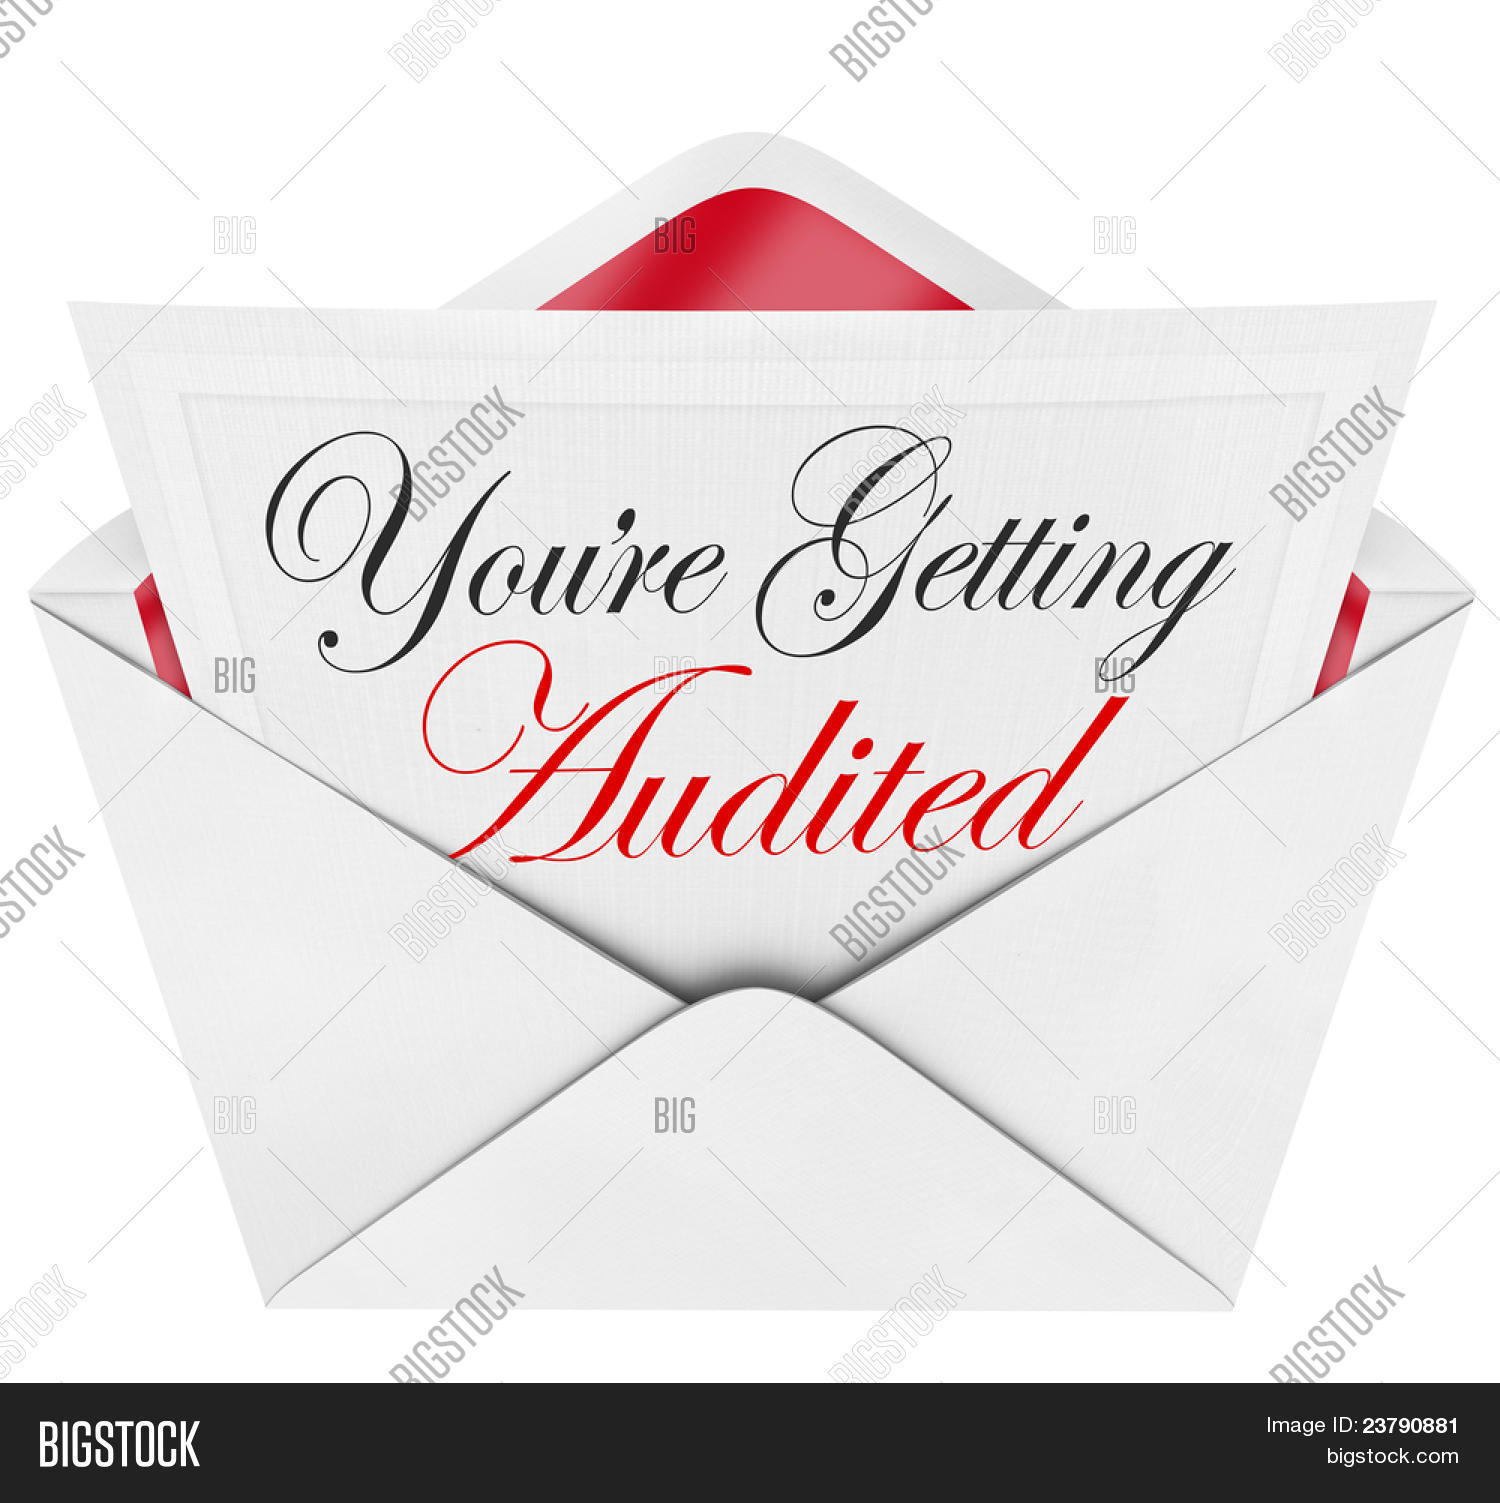 opening envelope image photo free trial bigstock